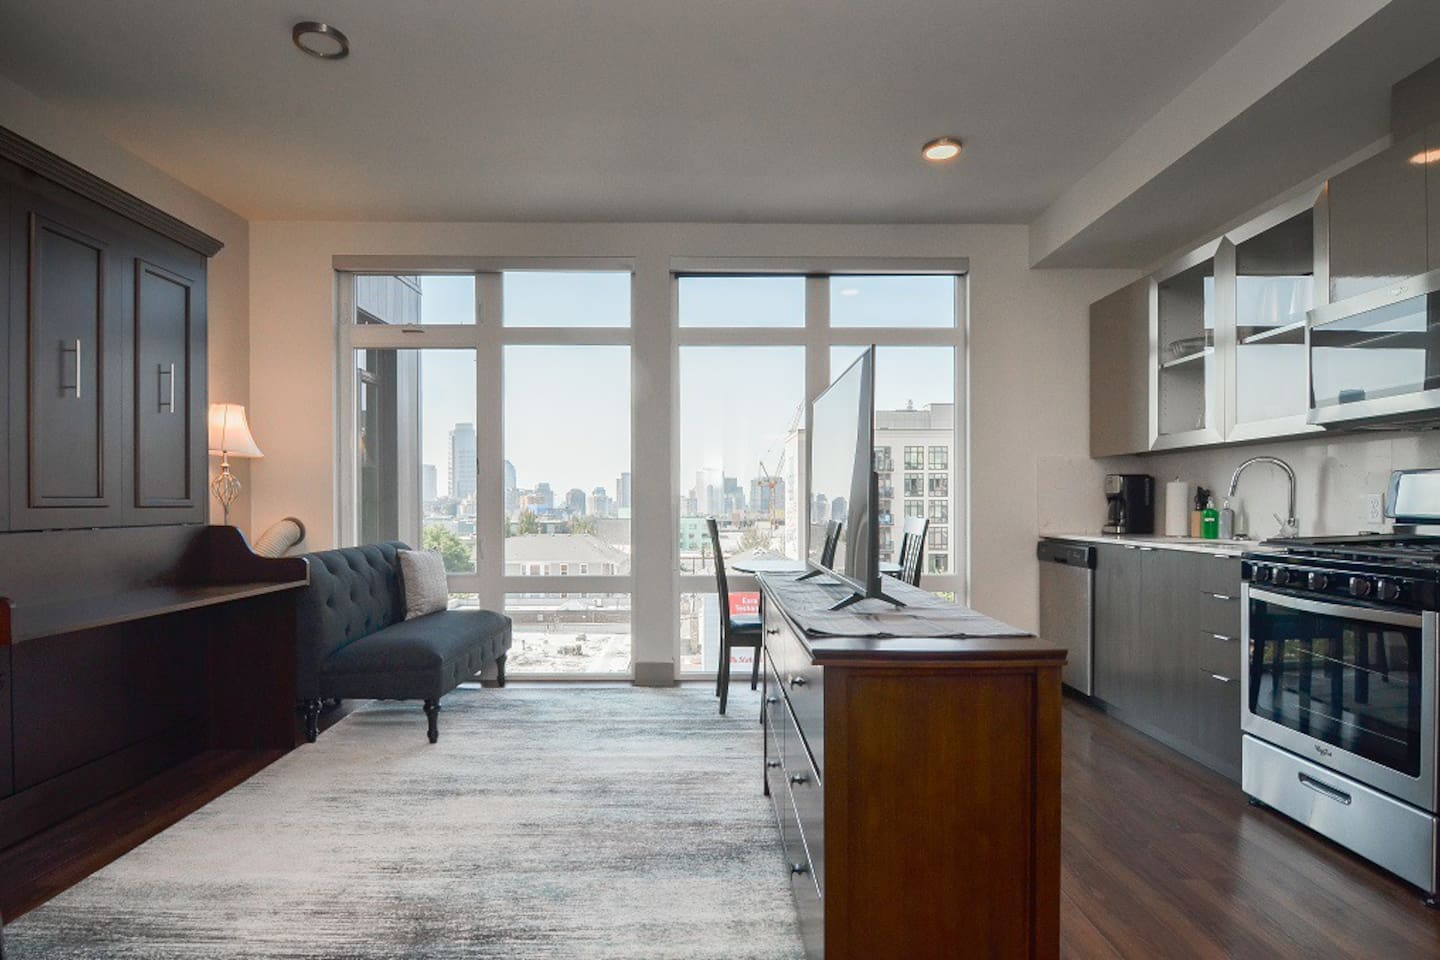 Studio apartment and office all in one place, perfect for those traveling for work or pleasure.